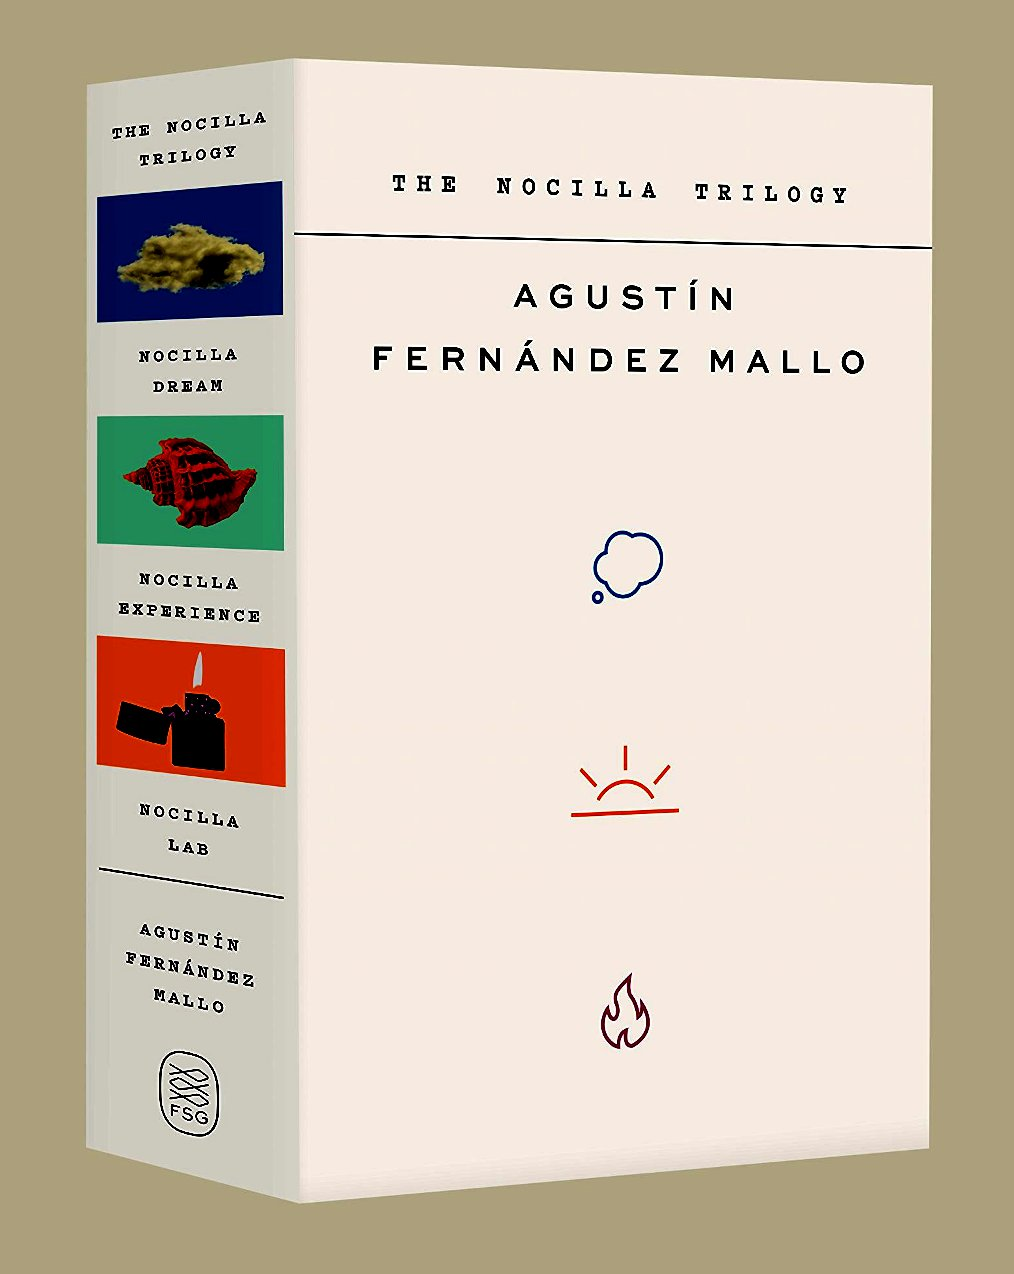 The Nocilla Trilogy: Nocilla Dream, Nocilla Experience, Nocilla Lab  by  Agustín Fernández Mallo  tr.  Thomas Bunstead  (Fitzcarraldo, 2017–2019; FSG, Feb. 2019)   Reviewed by Nick Oxford